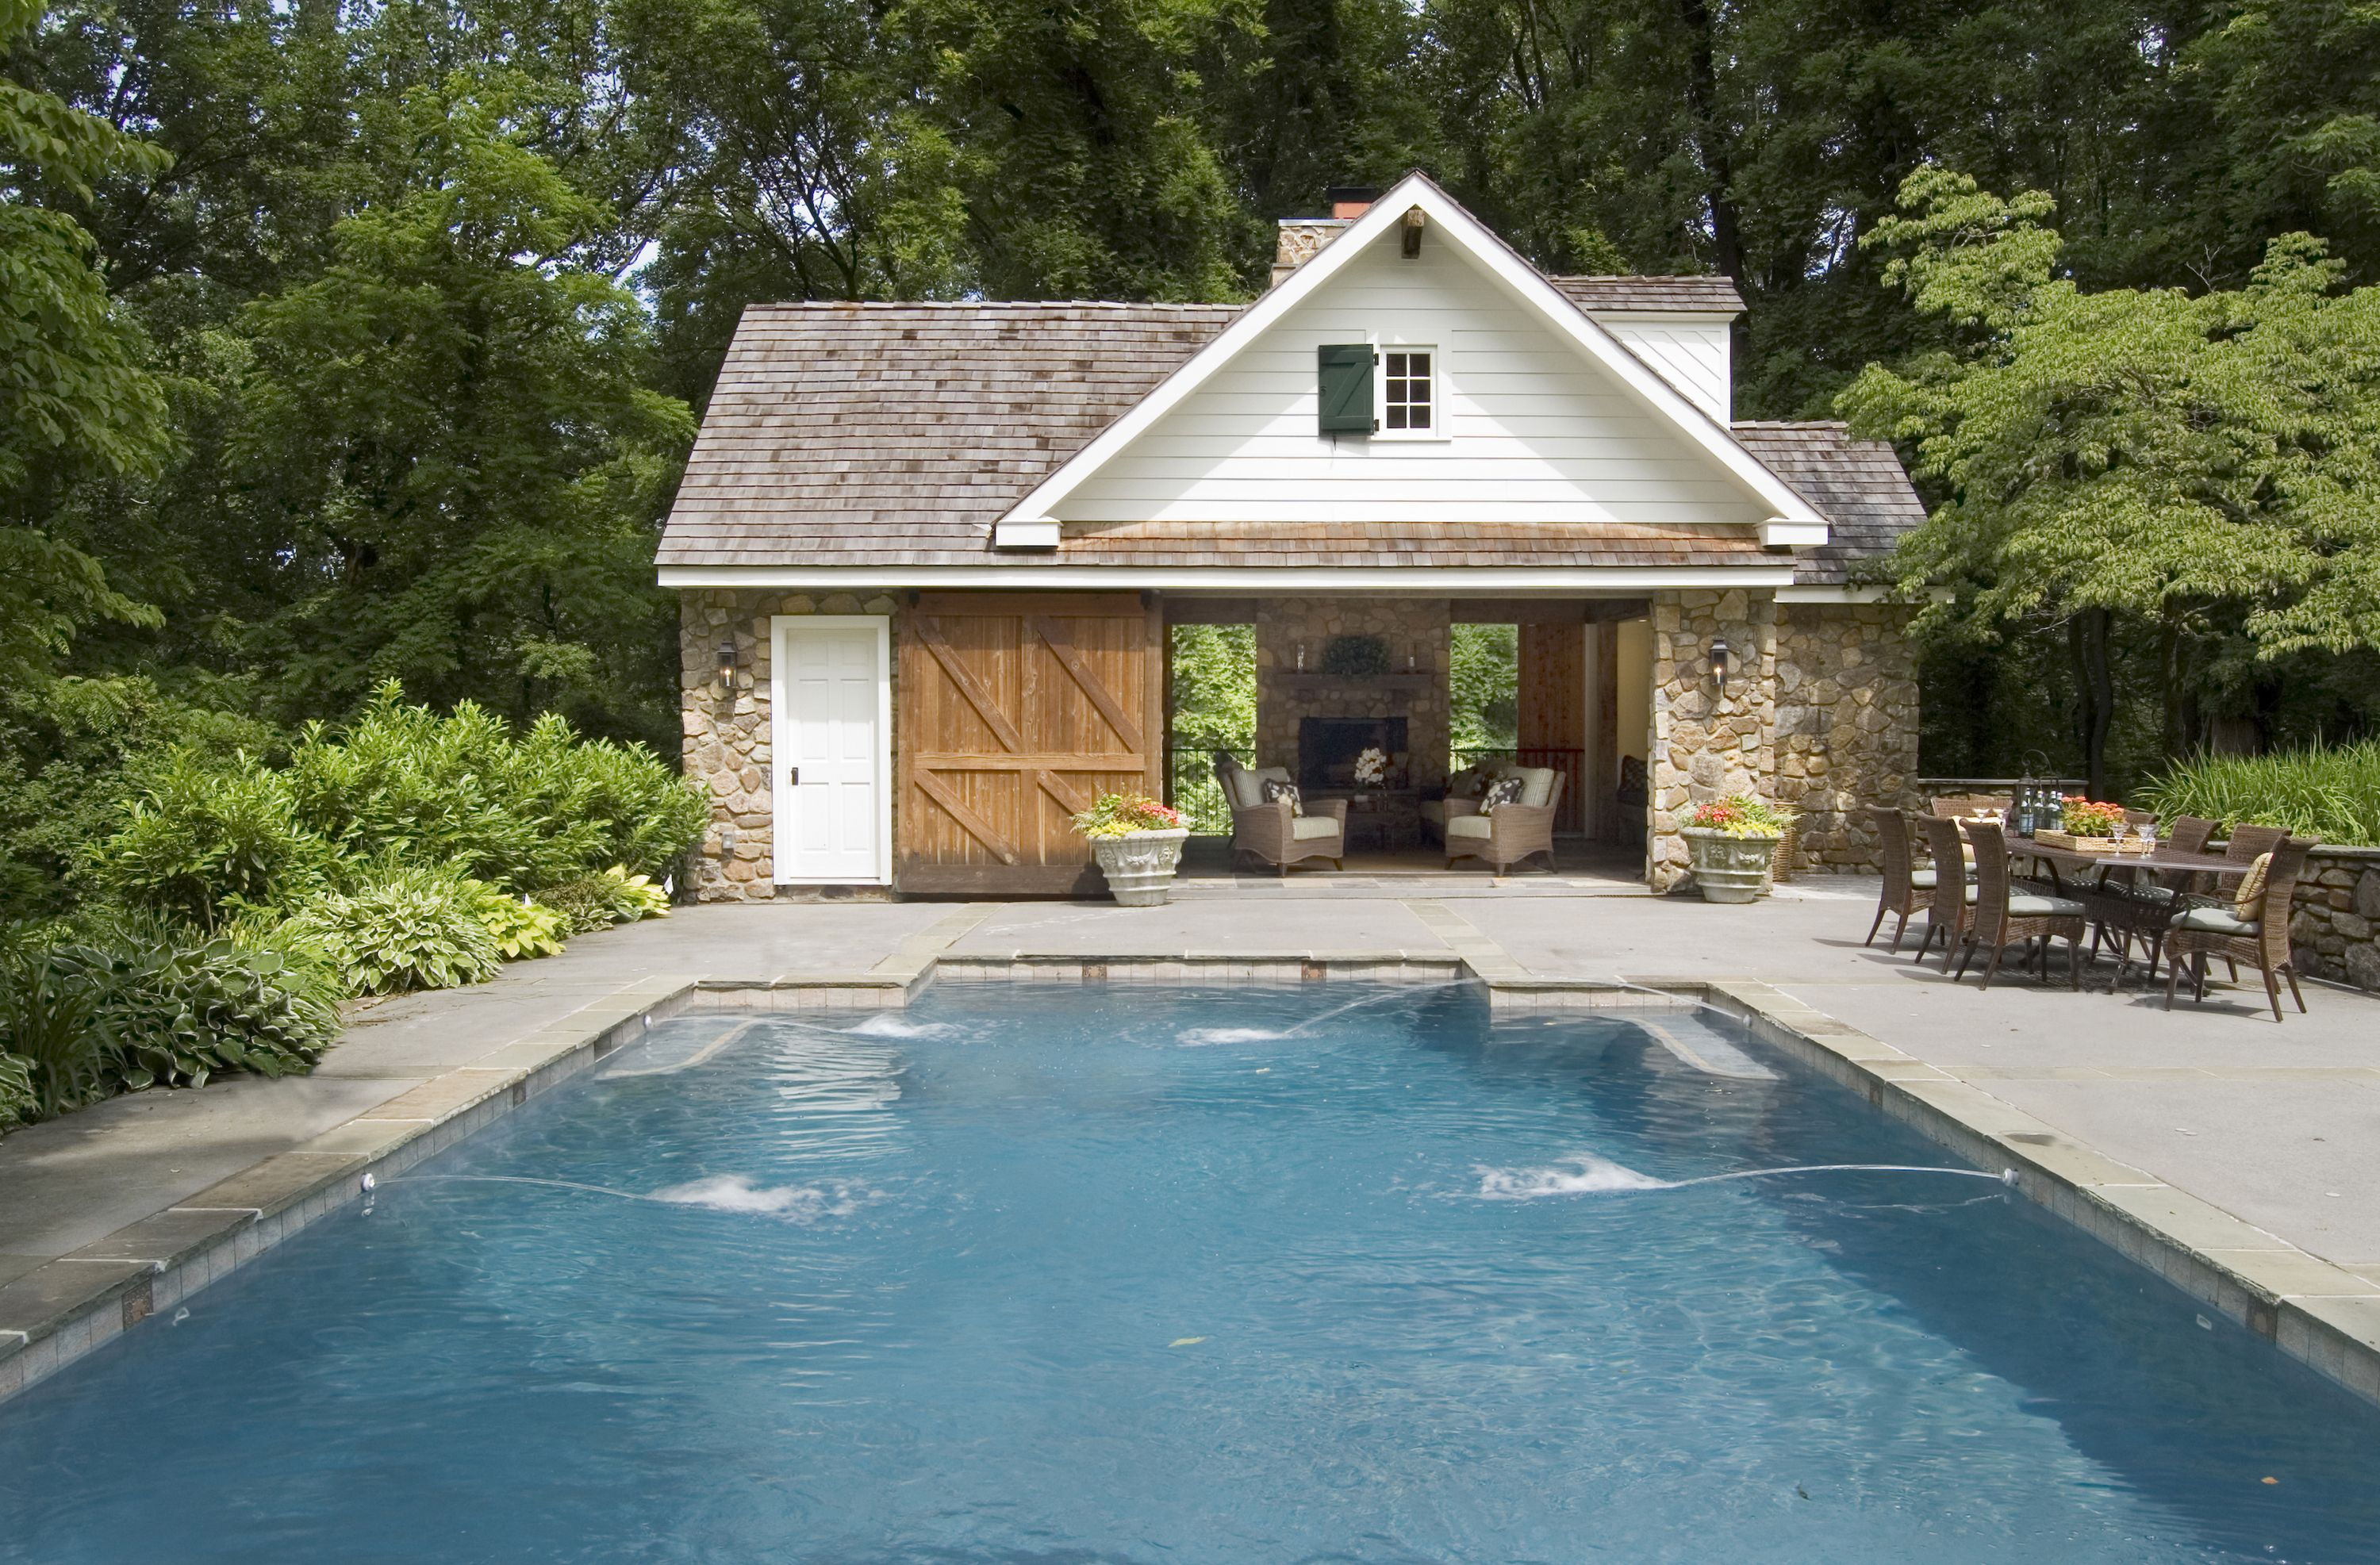 Pool House Ideas pool house designs ideas best modern pool house design ideas remodel pictures houzz awesome and beautiful Pool House Modeled After A 9th Century Colonial Farmhouse Look At The Built In